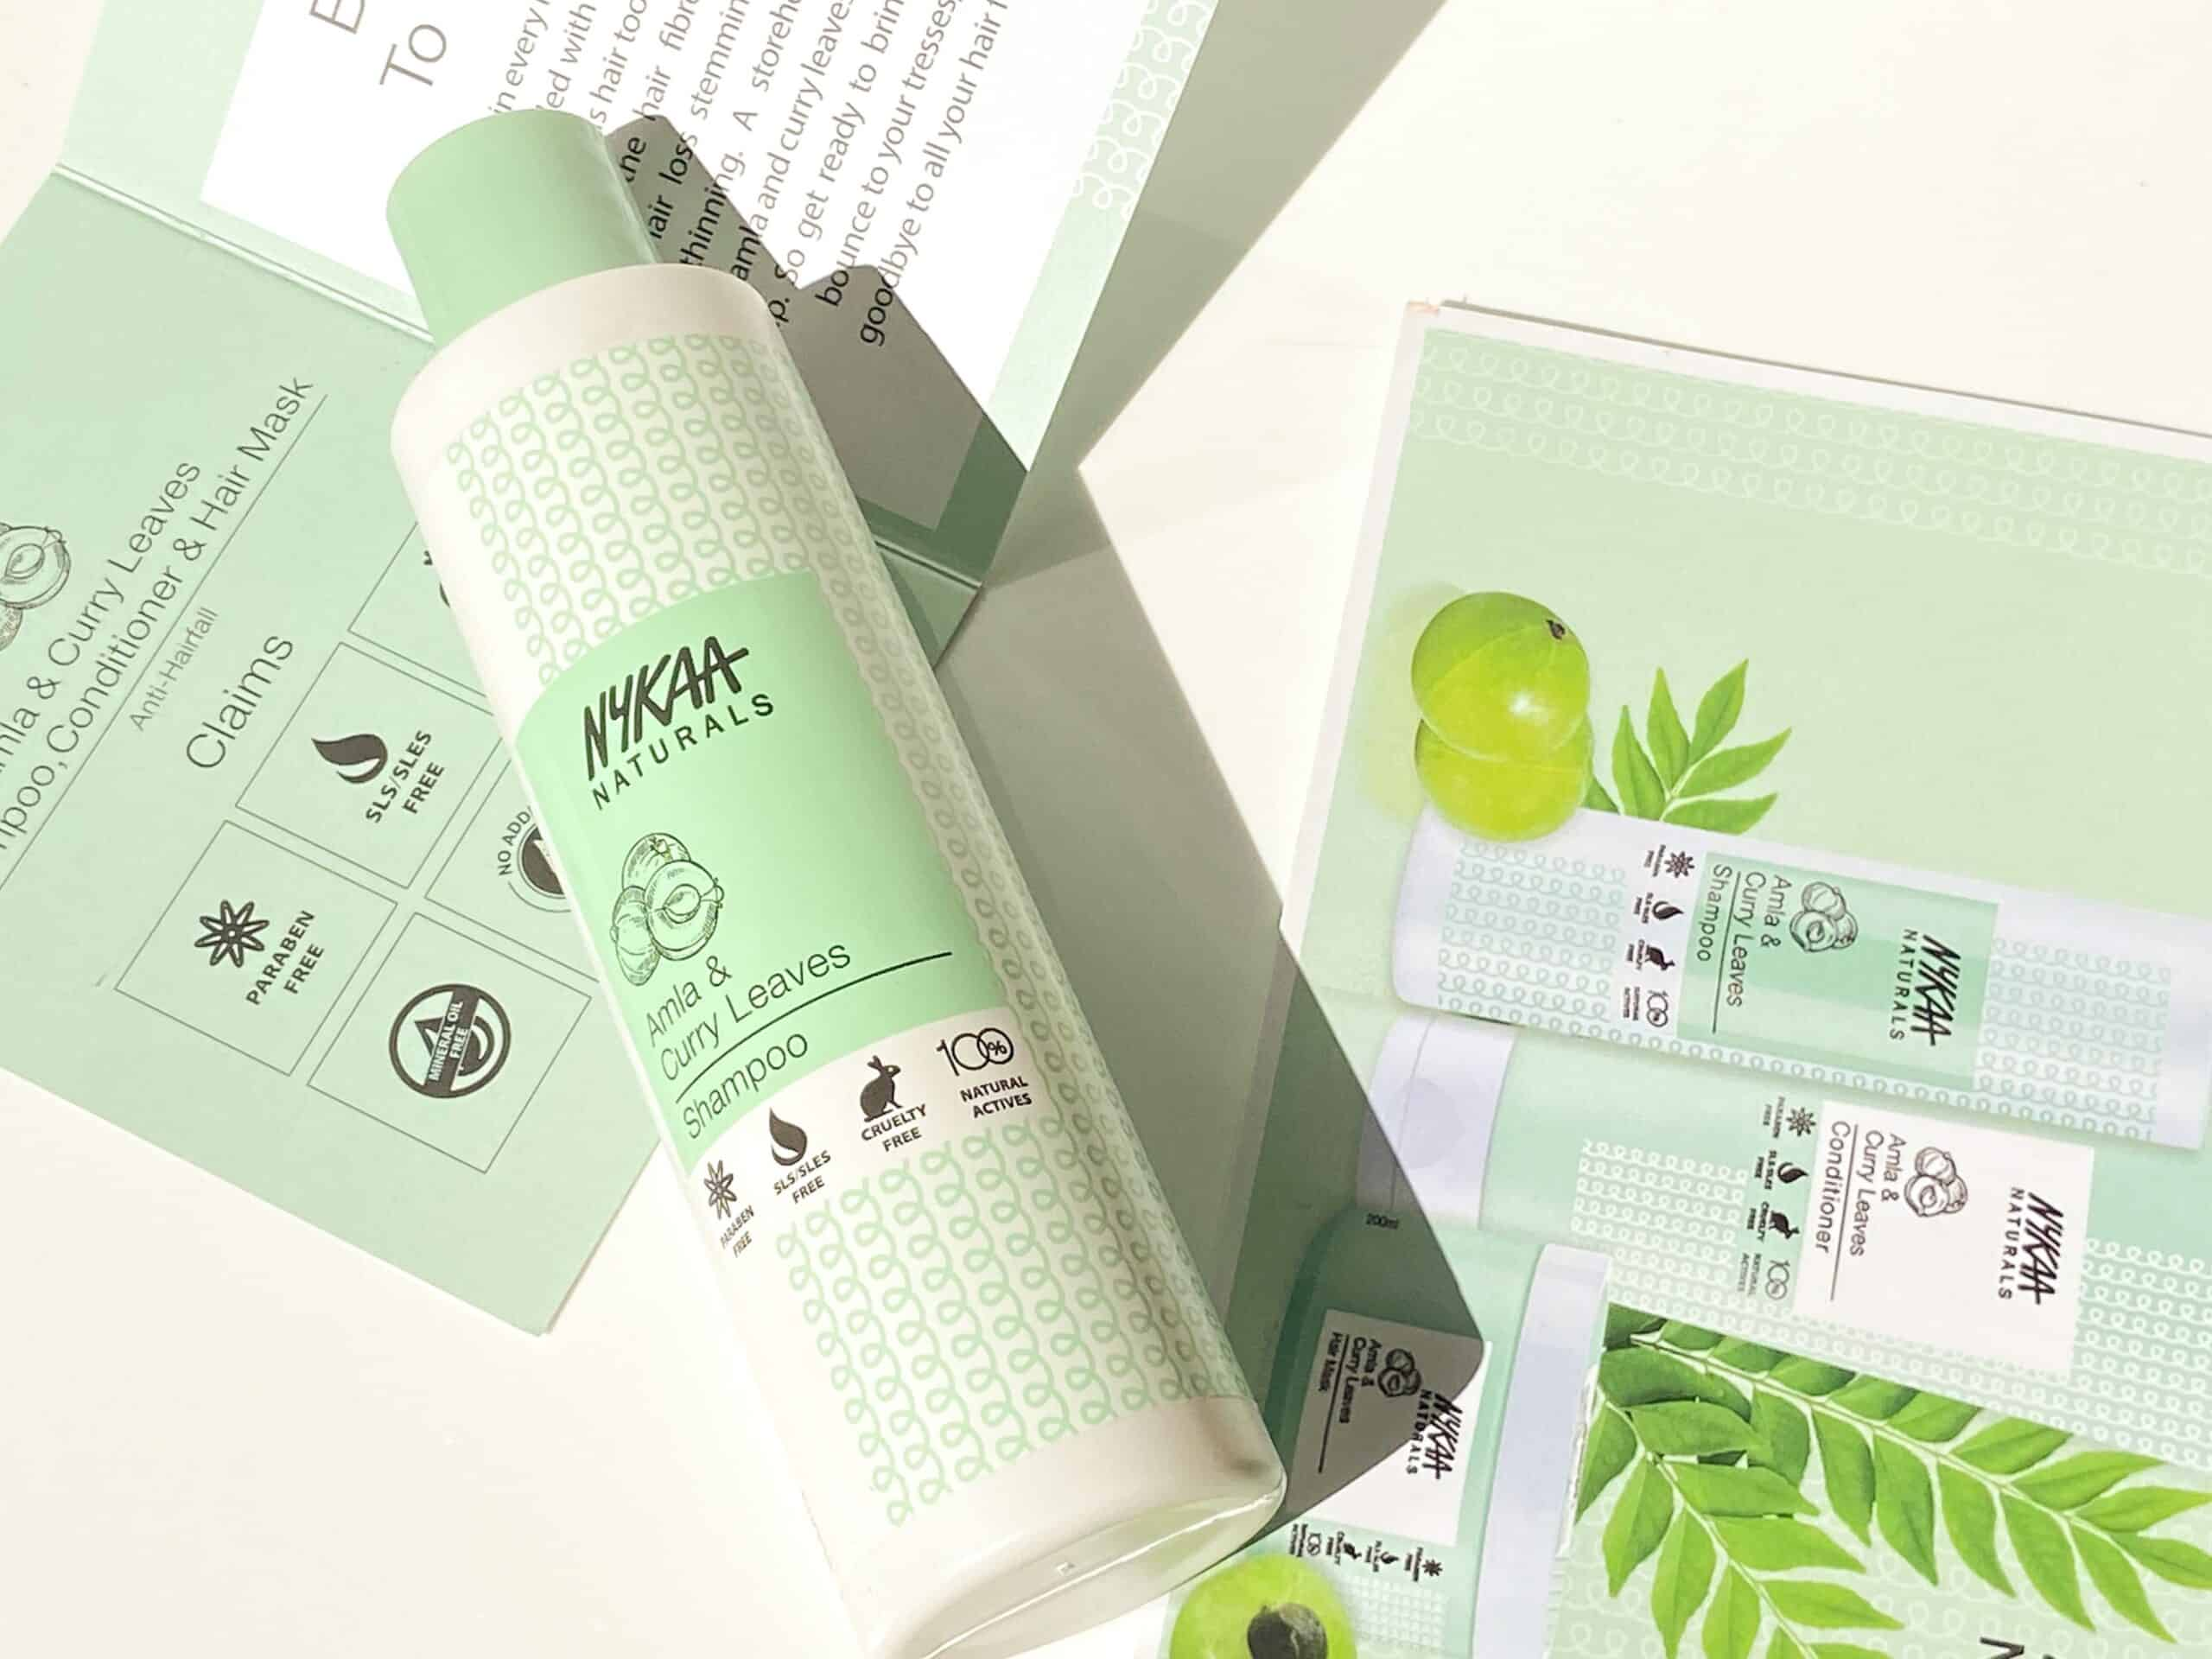 Nykaa Naturals Amla and Curry Leaves Shampoo Review